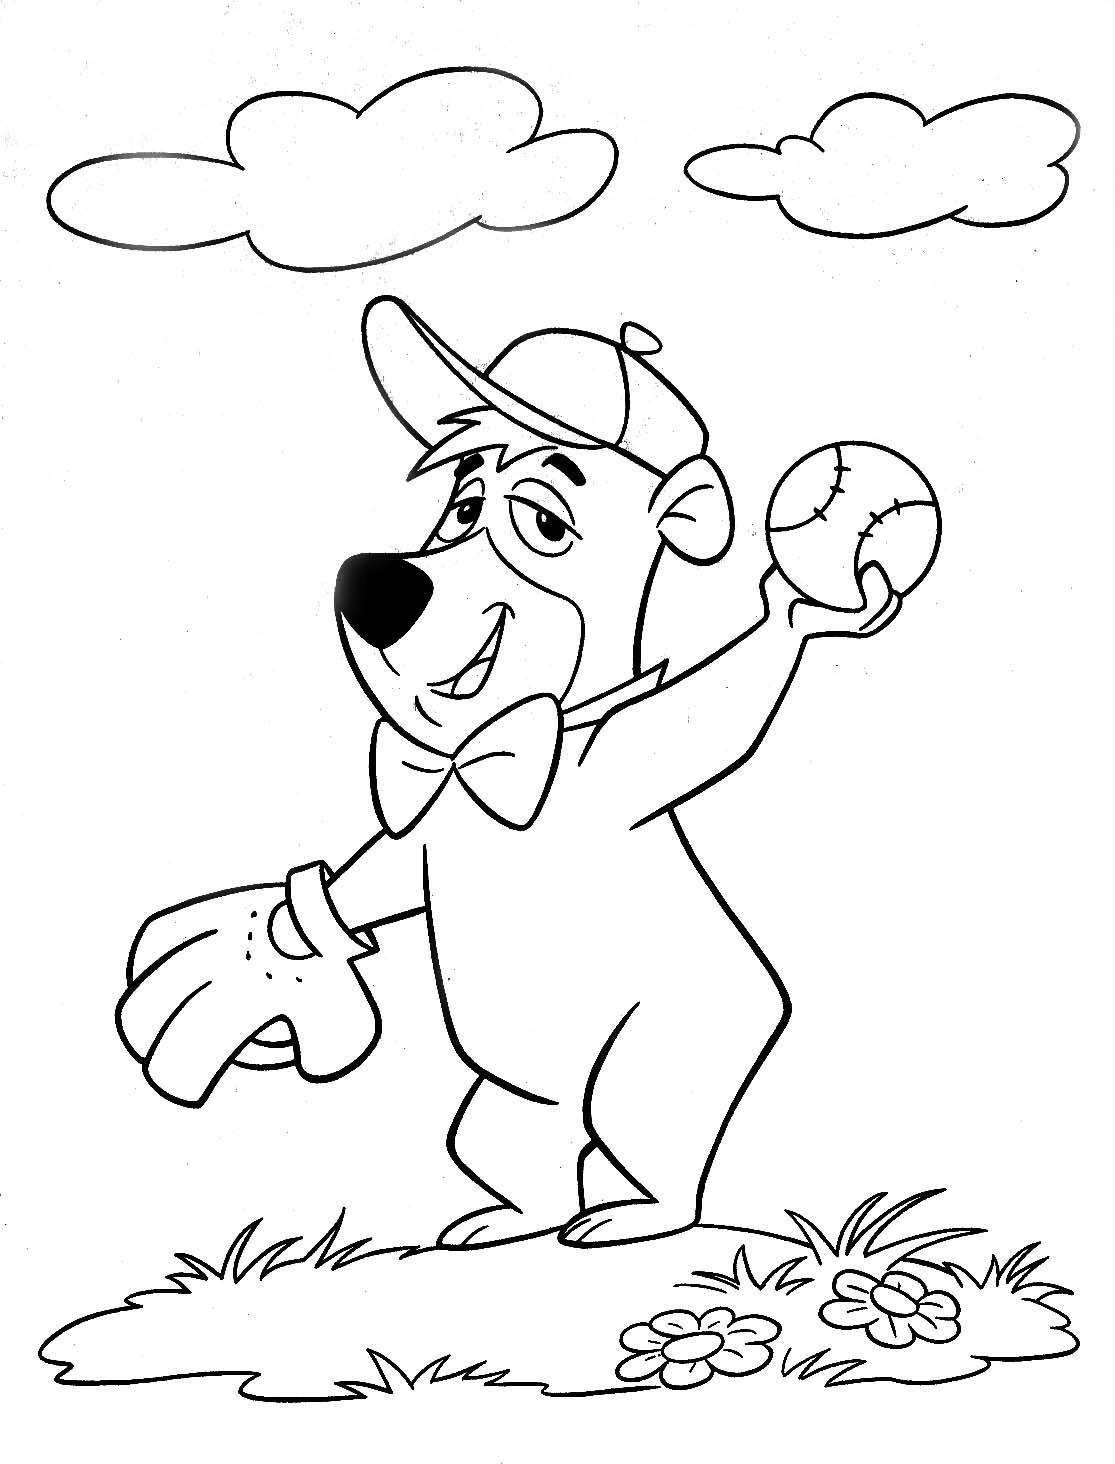 Yogi Bear Boo Boo Bear Coloring Pages Free For Kids Printable Download Bear Coloring Pages Coloring Pages Detailed Coloring Pages